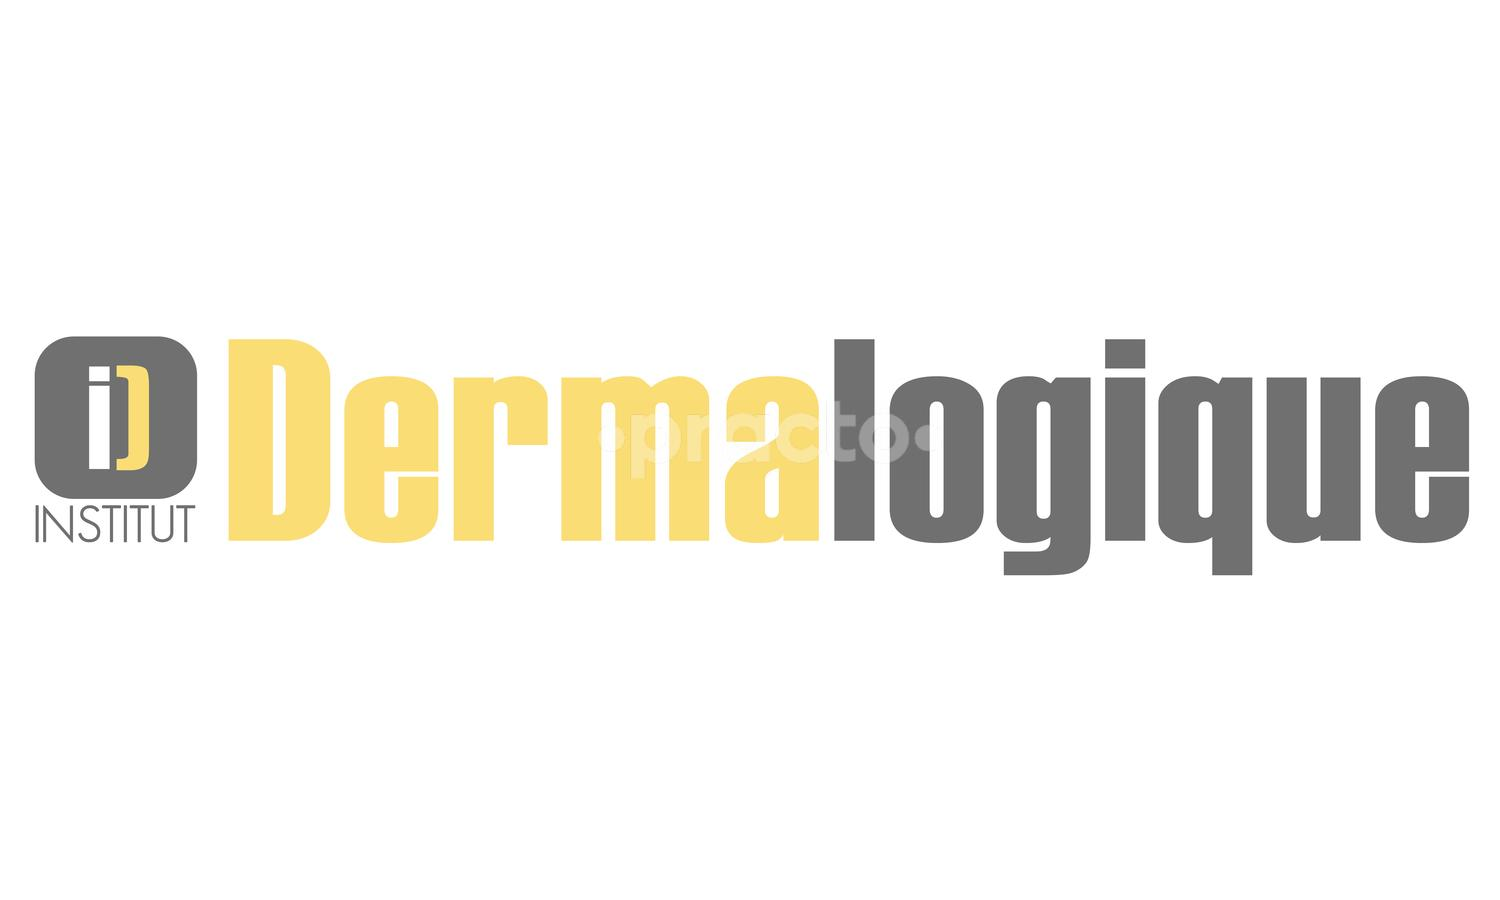 Institute Dermalogique By Colayco Dermatology Clinic